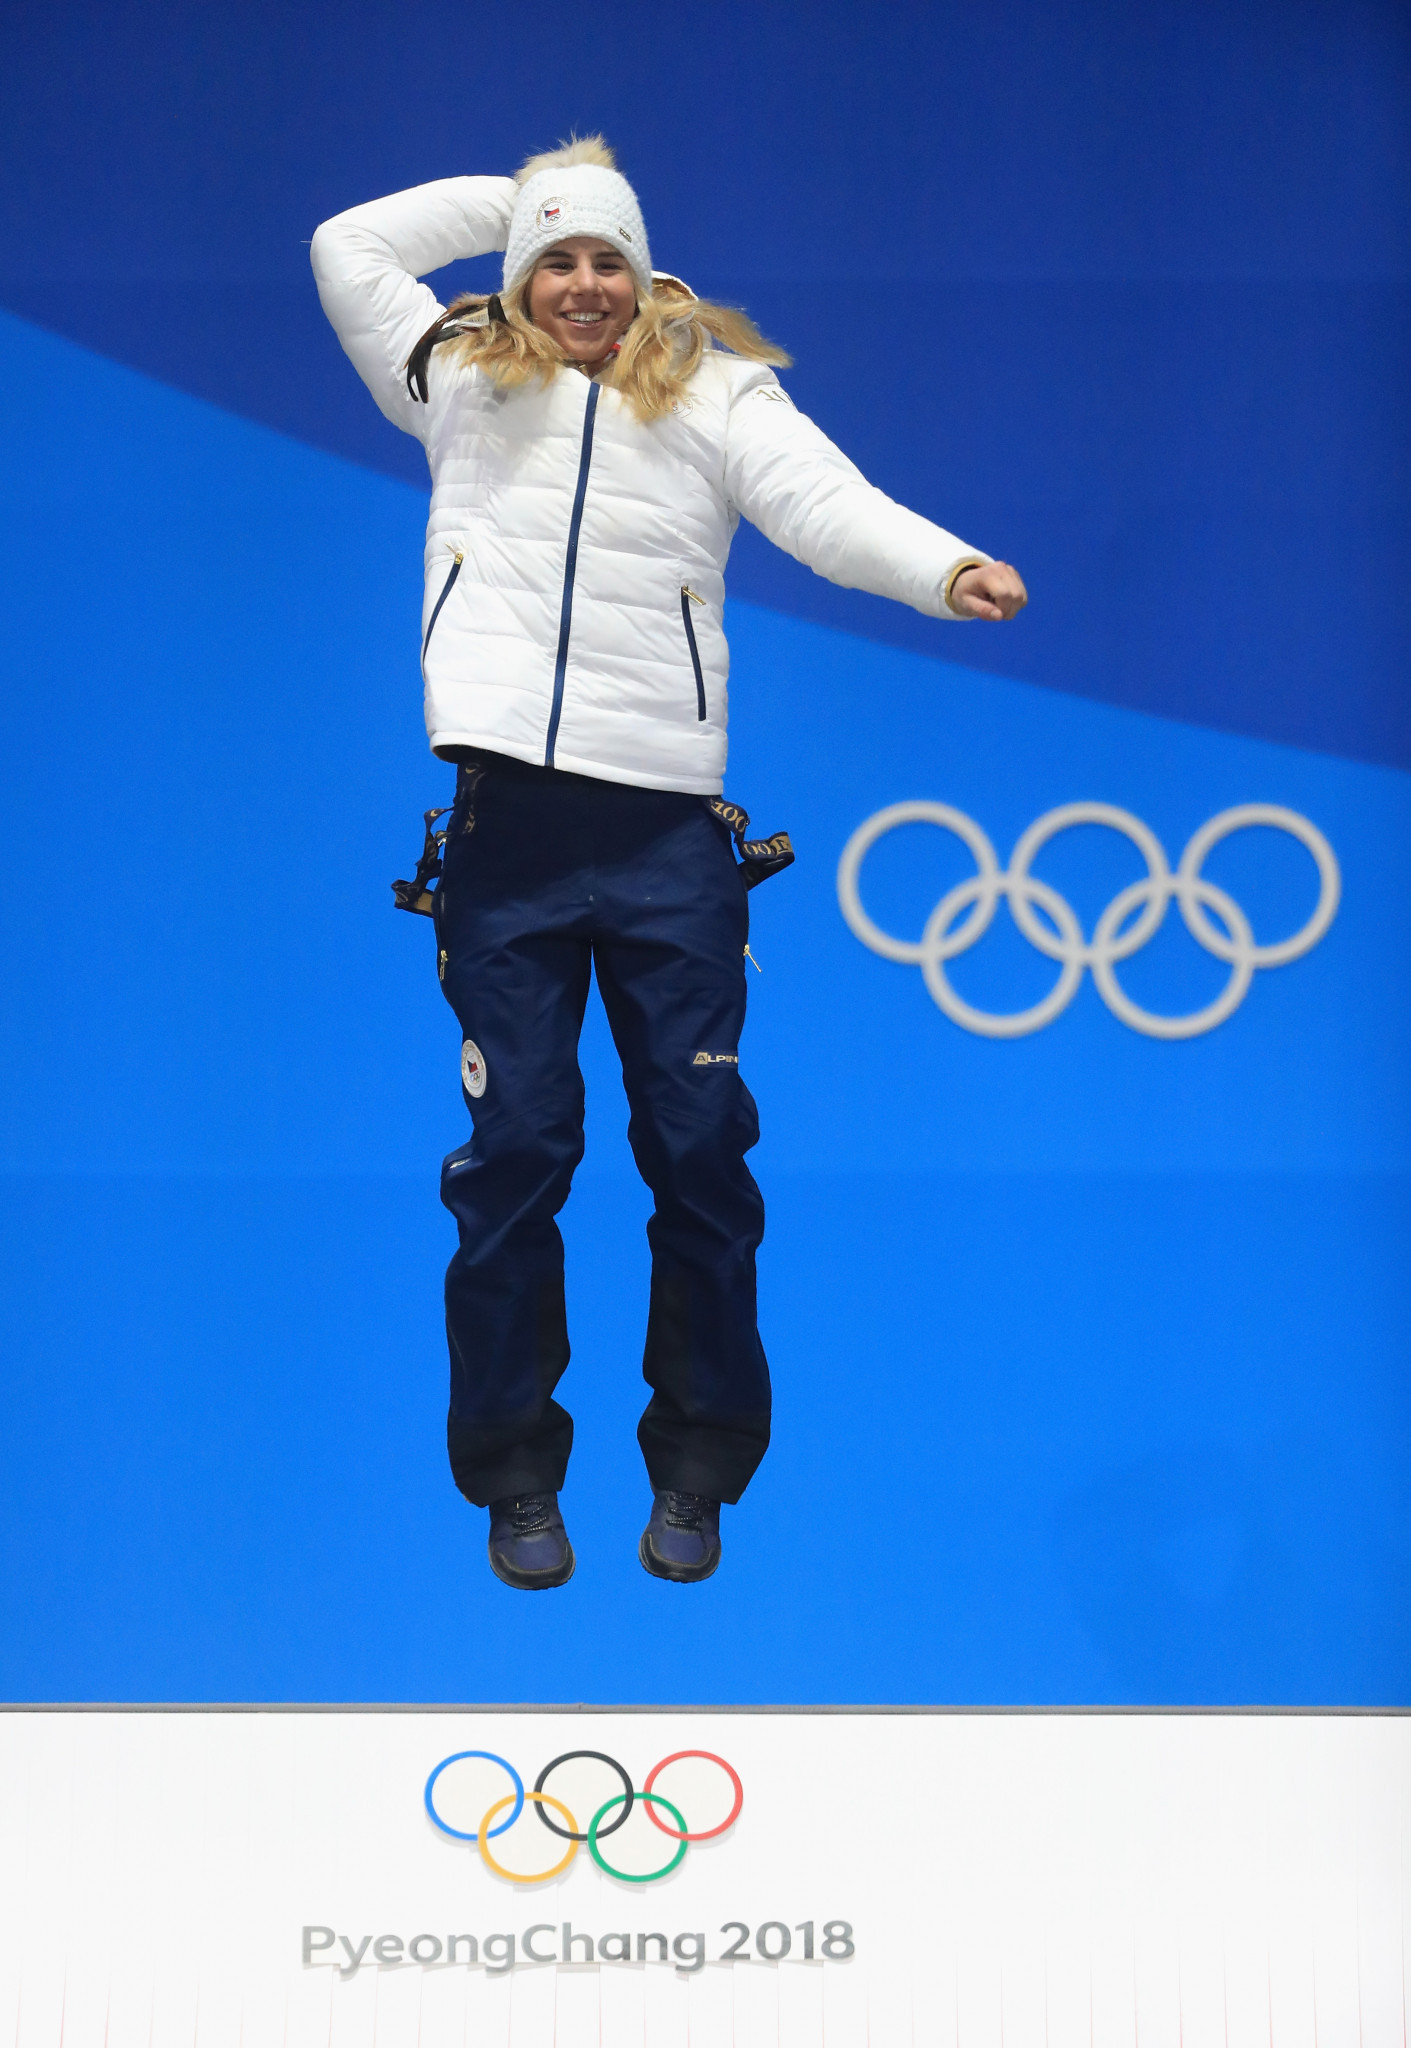 Ester Ledecká celebrates her unique Olympic ski/snowboard double at Pyeongchang 2018 Games - just the thing for the sport's promotion believes Gian-Franco Kasper ©Getty Images